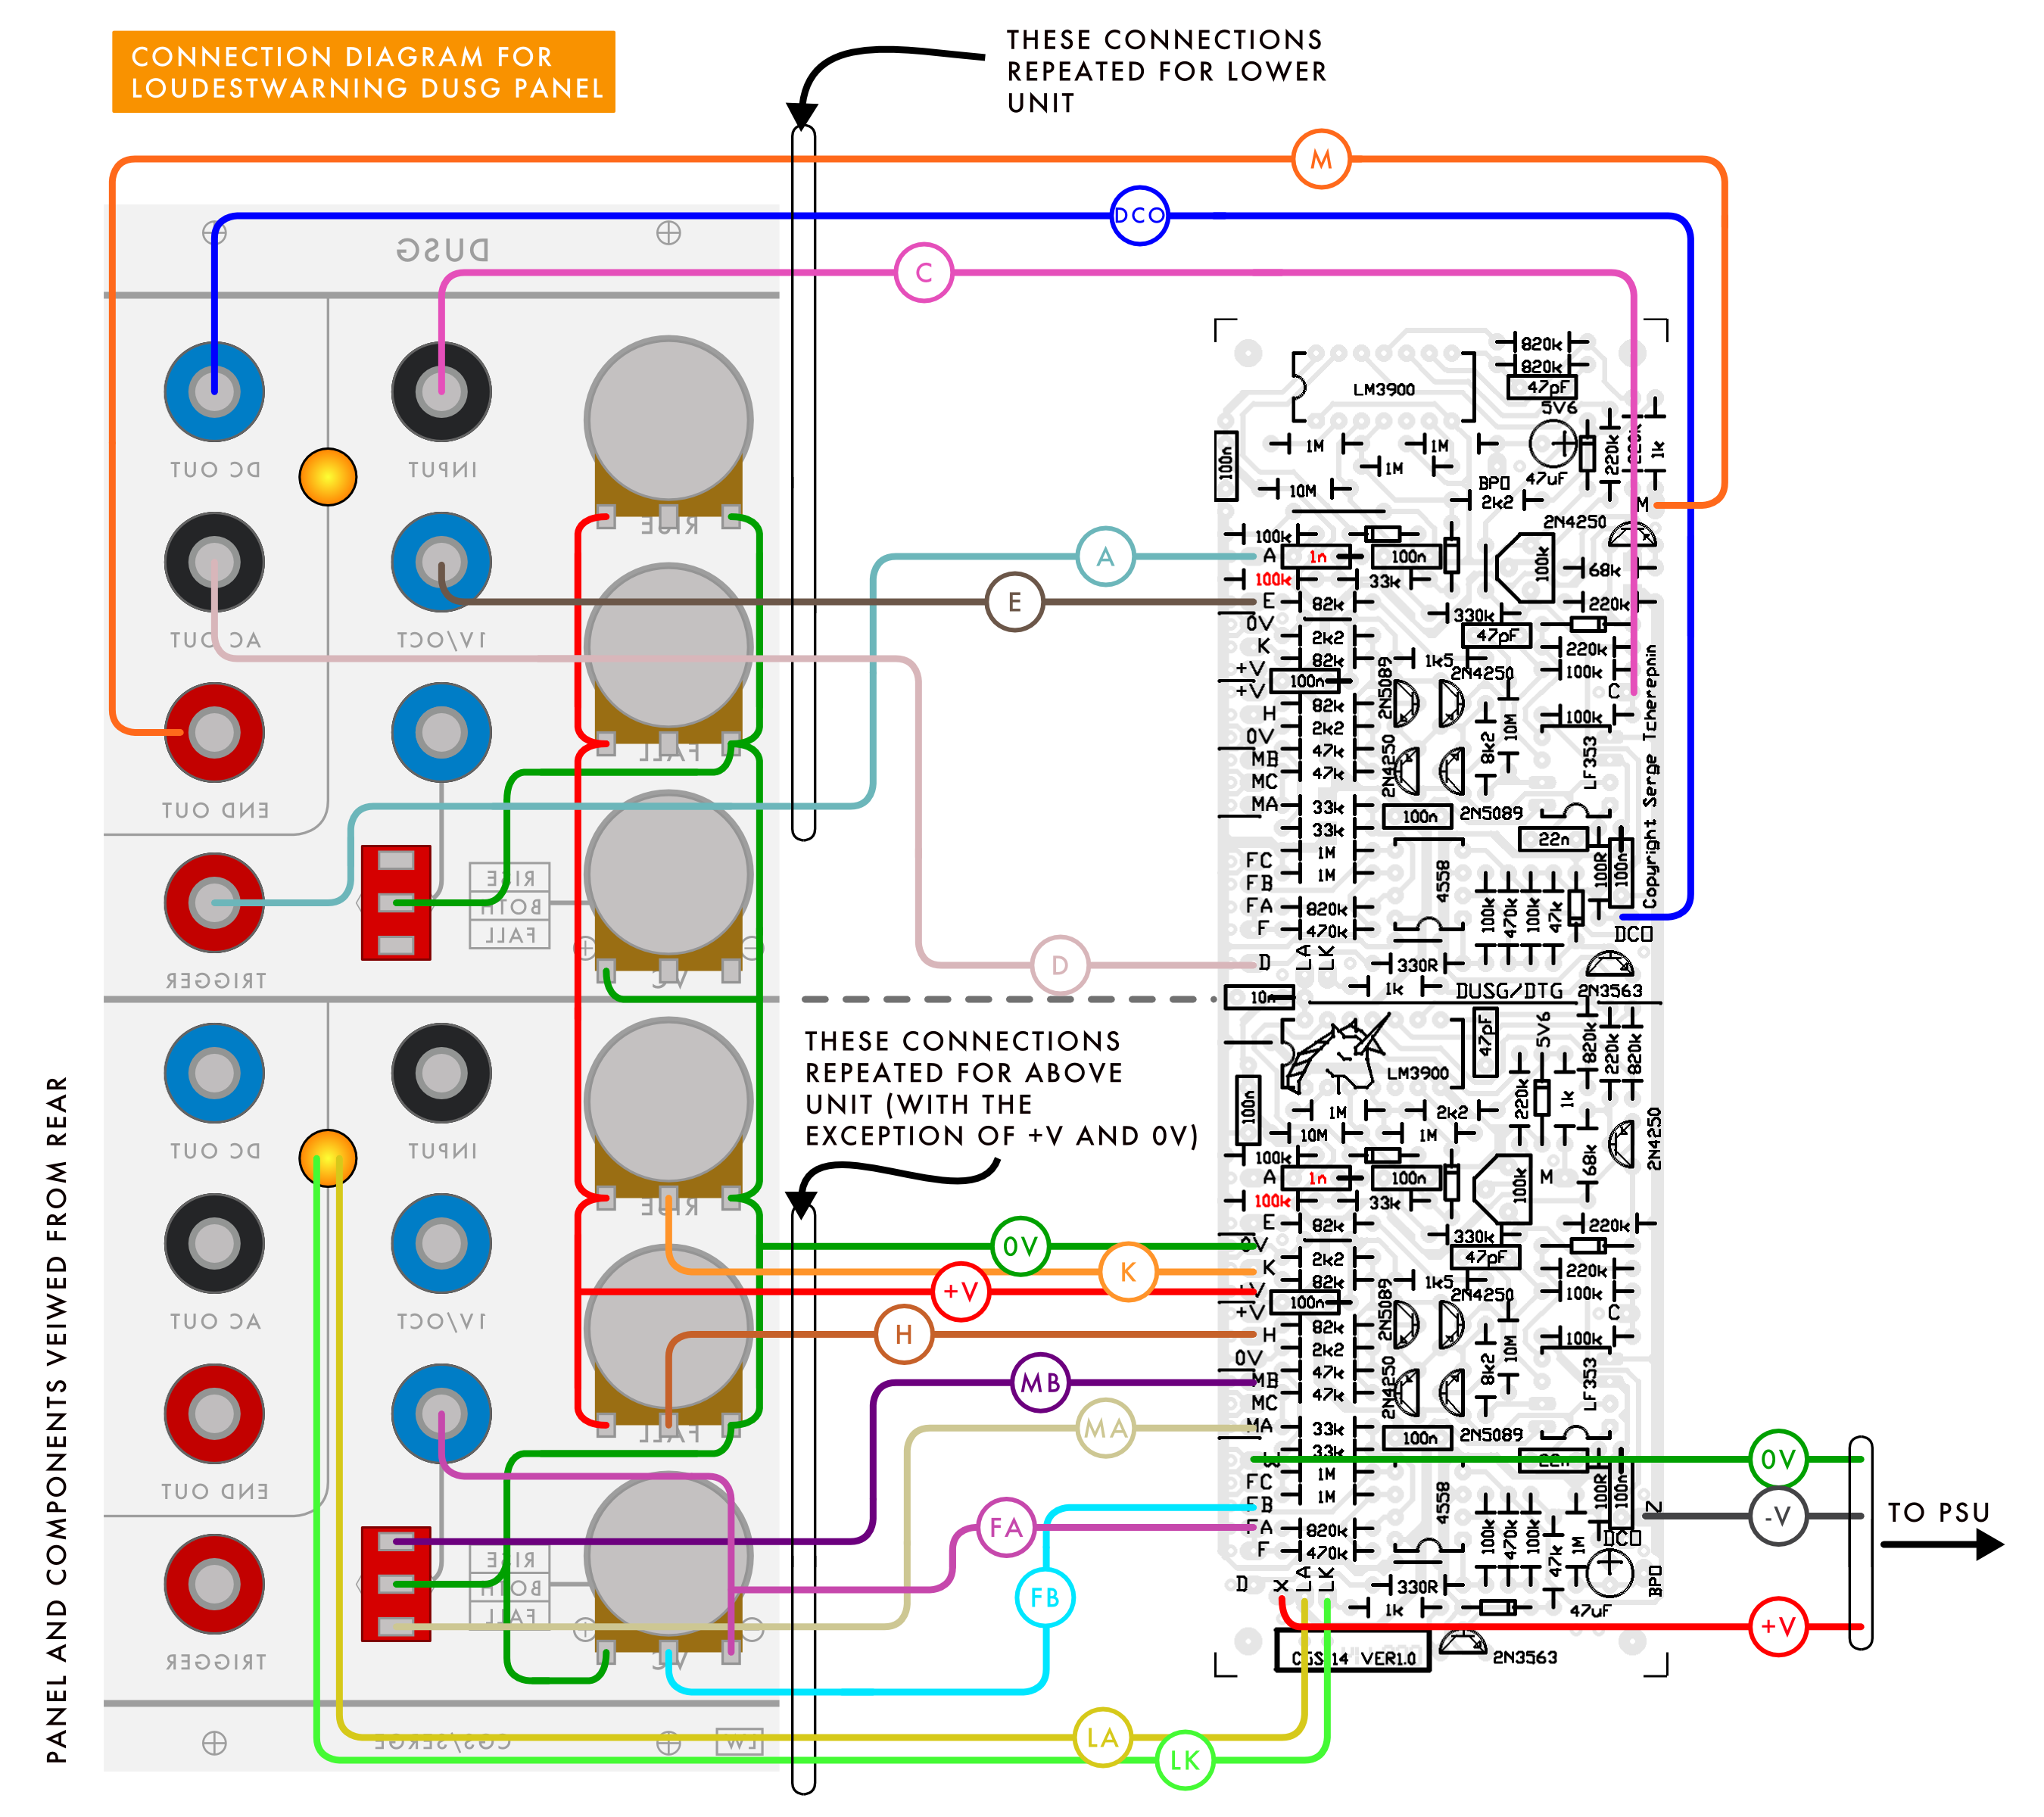 DUSG WIRING DIAGRAM V1